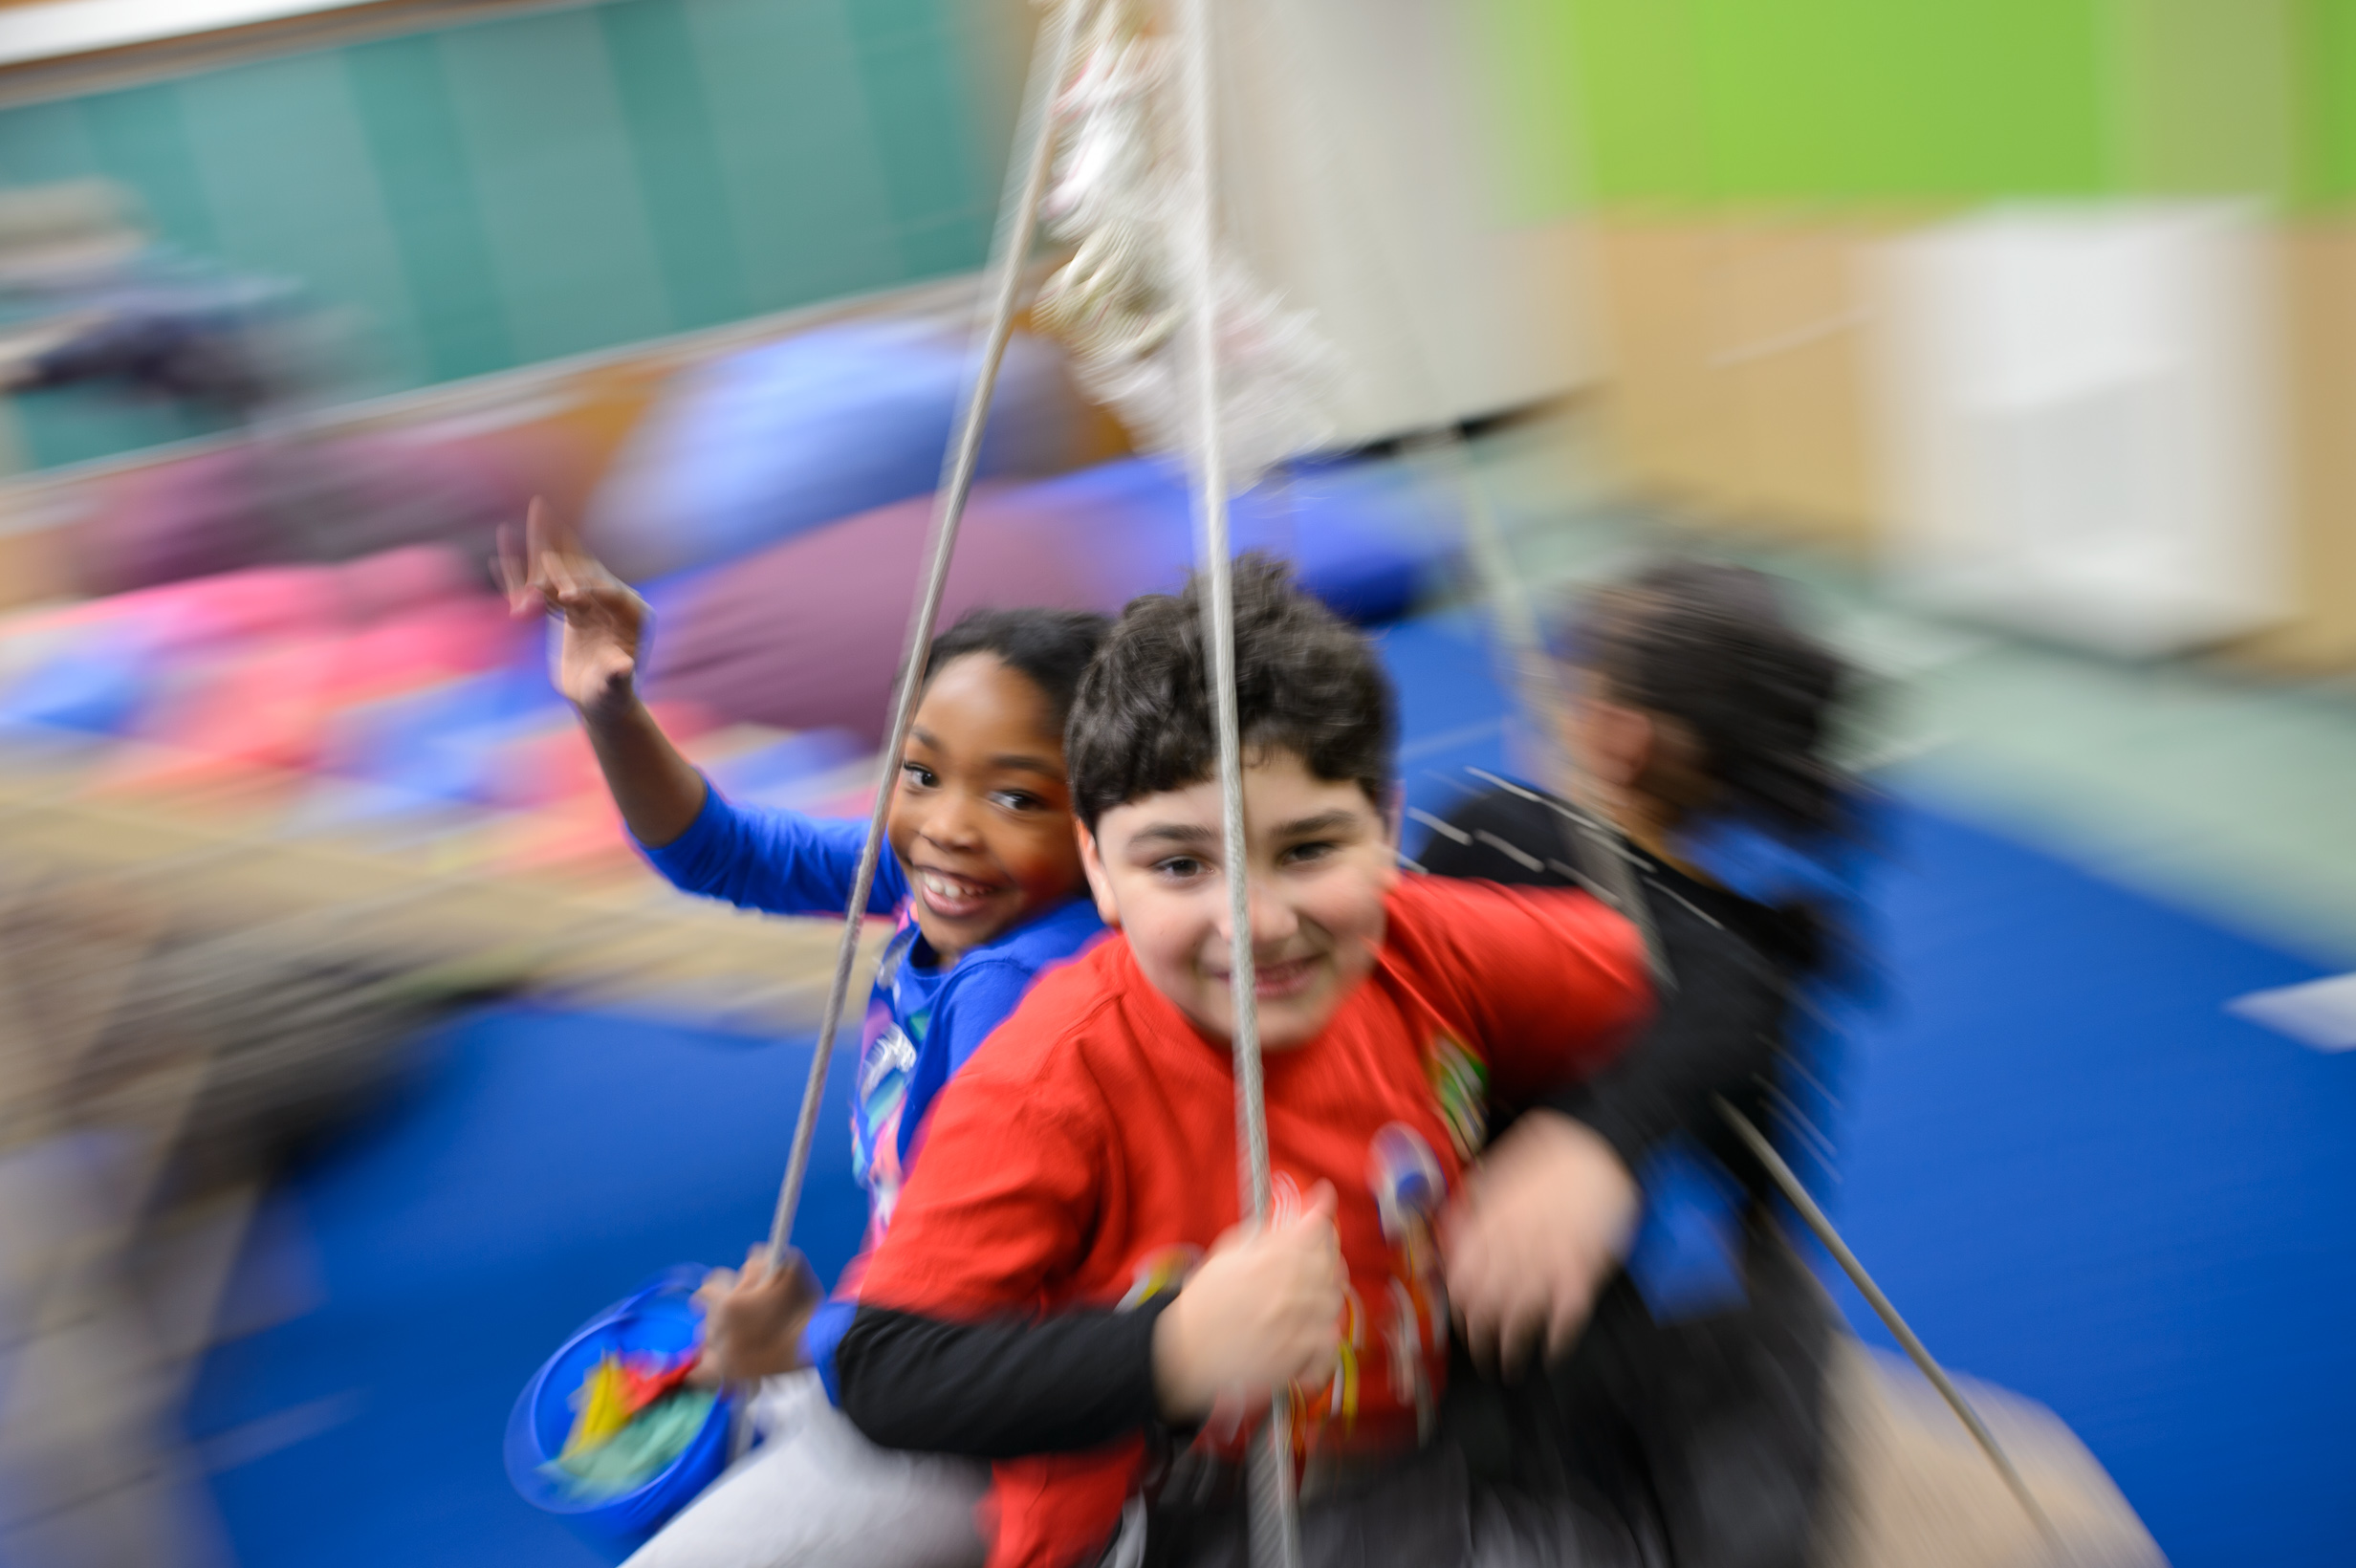 Children having some fun on the swing at after school